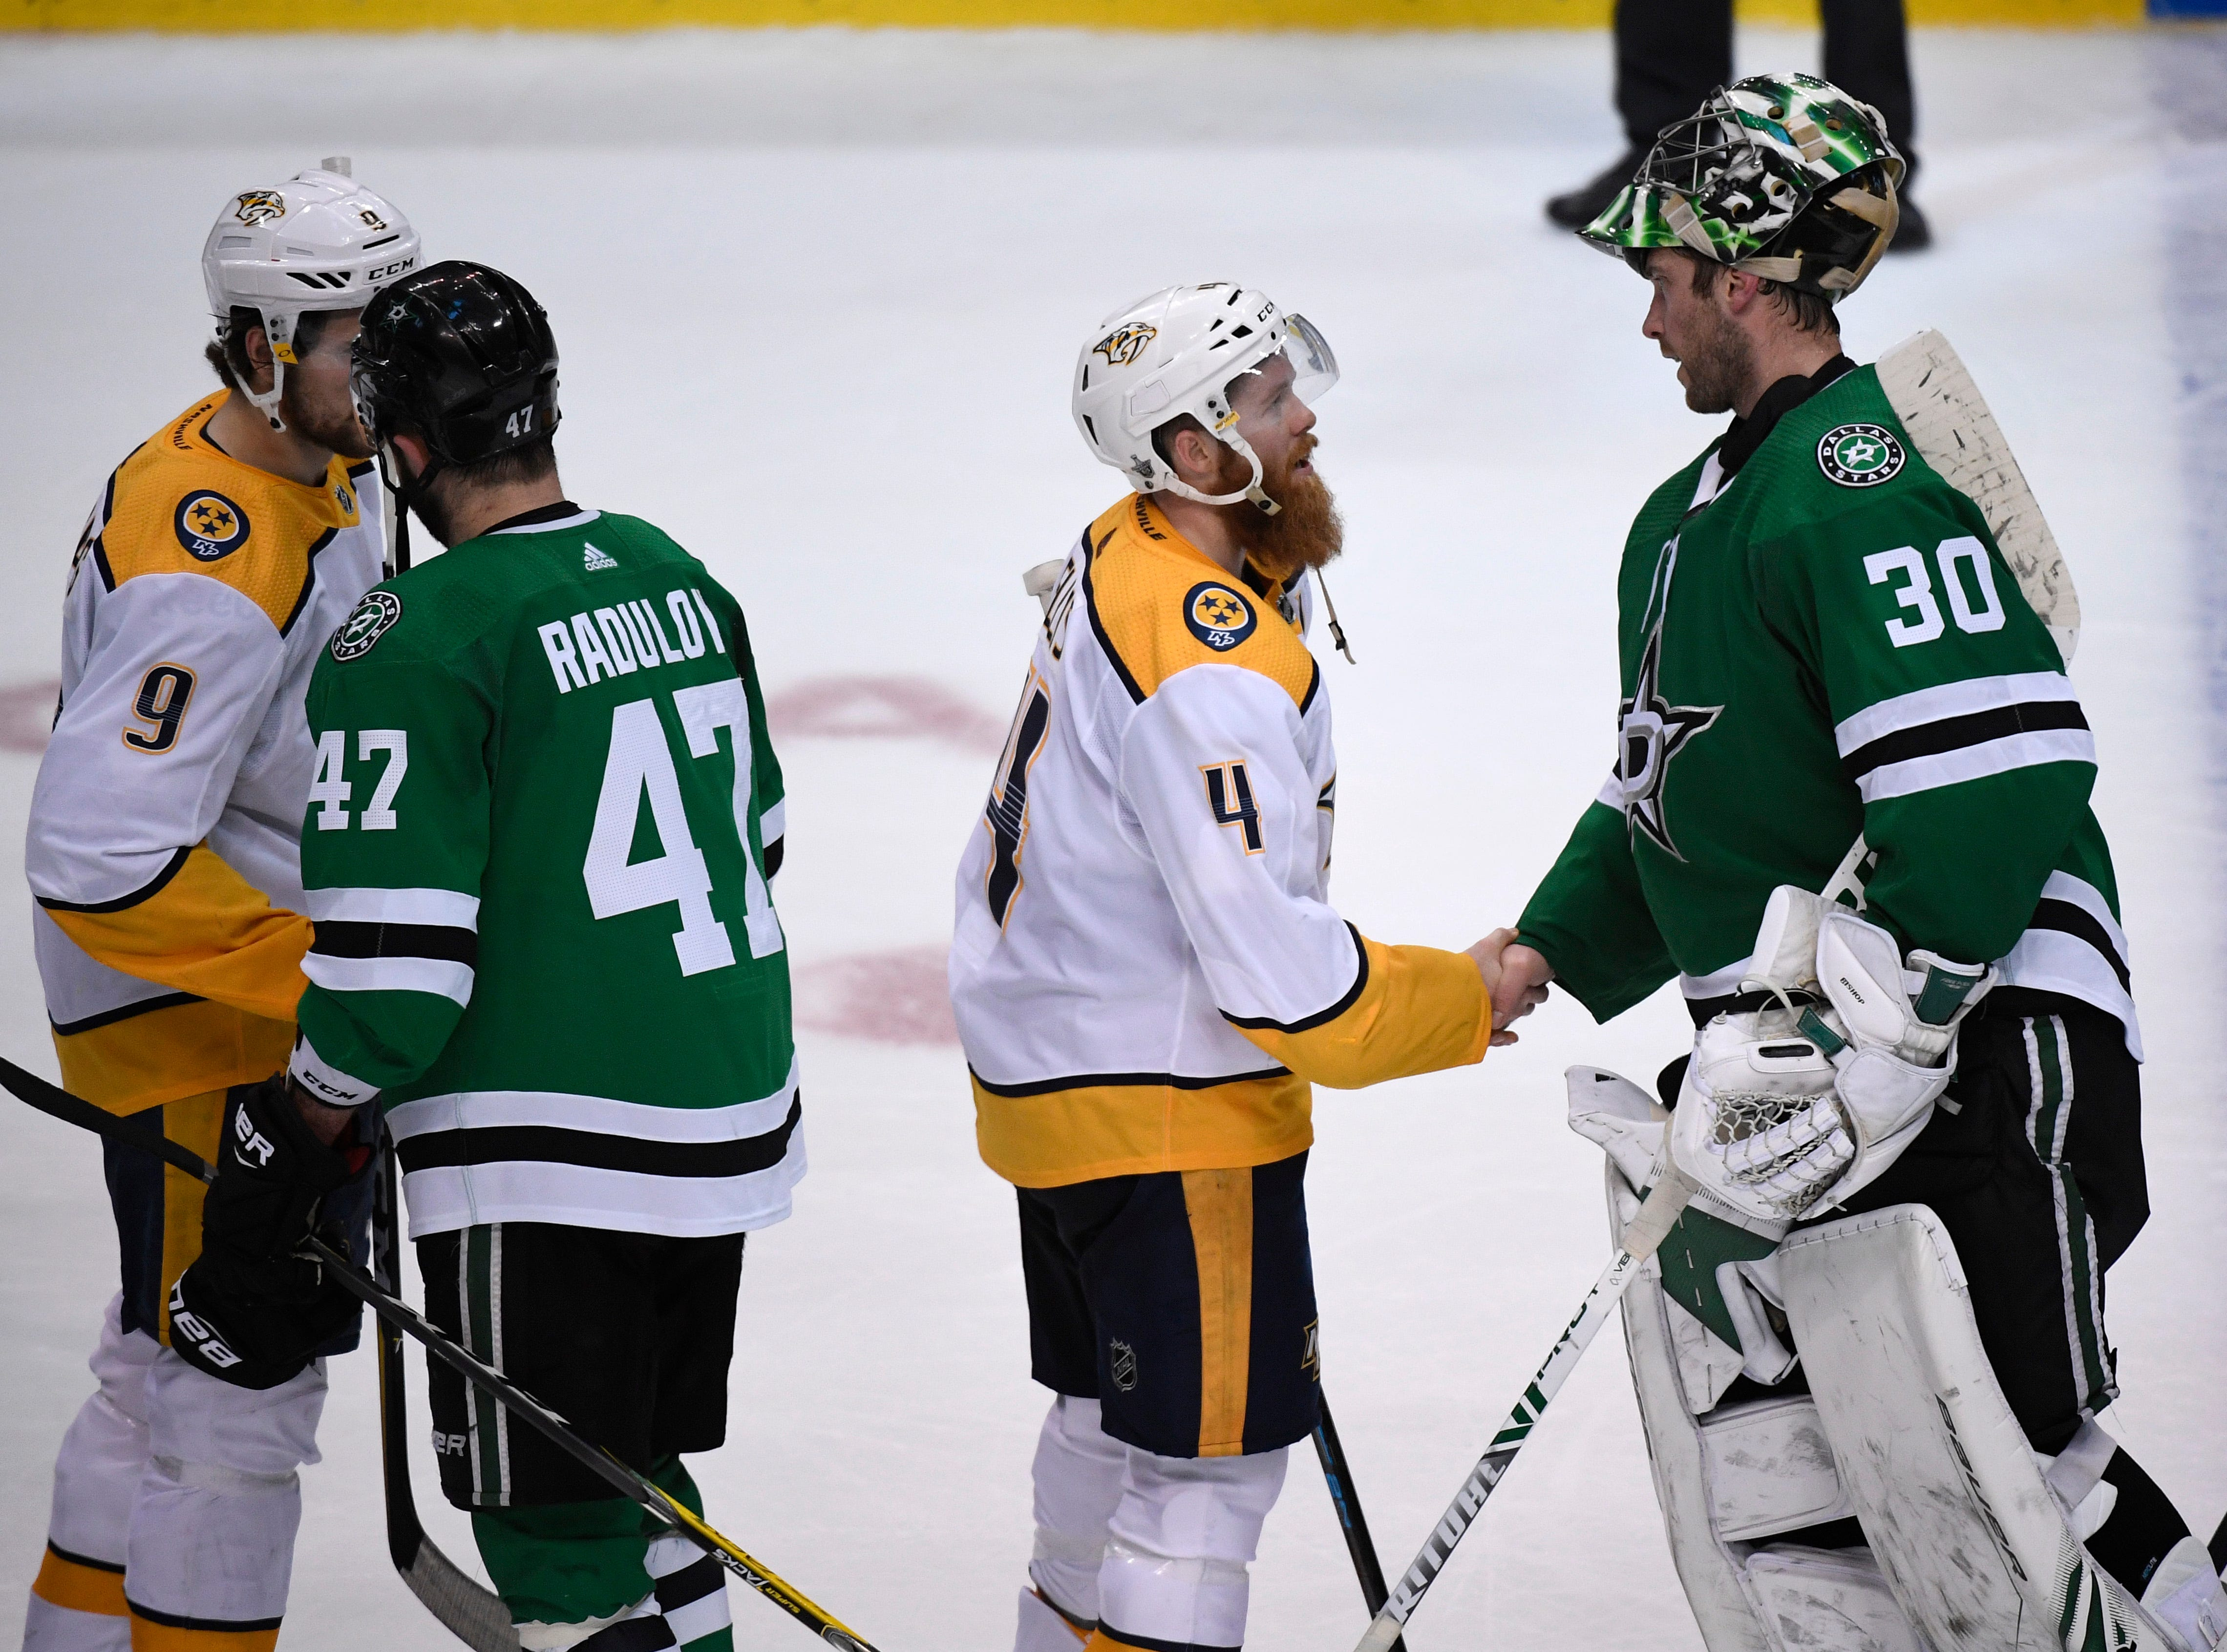 Nashville Predators left wing Filip Forsberg (9) and defenseman Ryan Ellis (4) shake hands with Dallas Stars right wing Alexander Radulov (47) and goaltender Ben Bishop (30) after losing the divisional semifinal series at the American Airlines Center in Dallas, Texas, Monday, April 22, 2019.